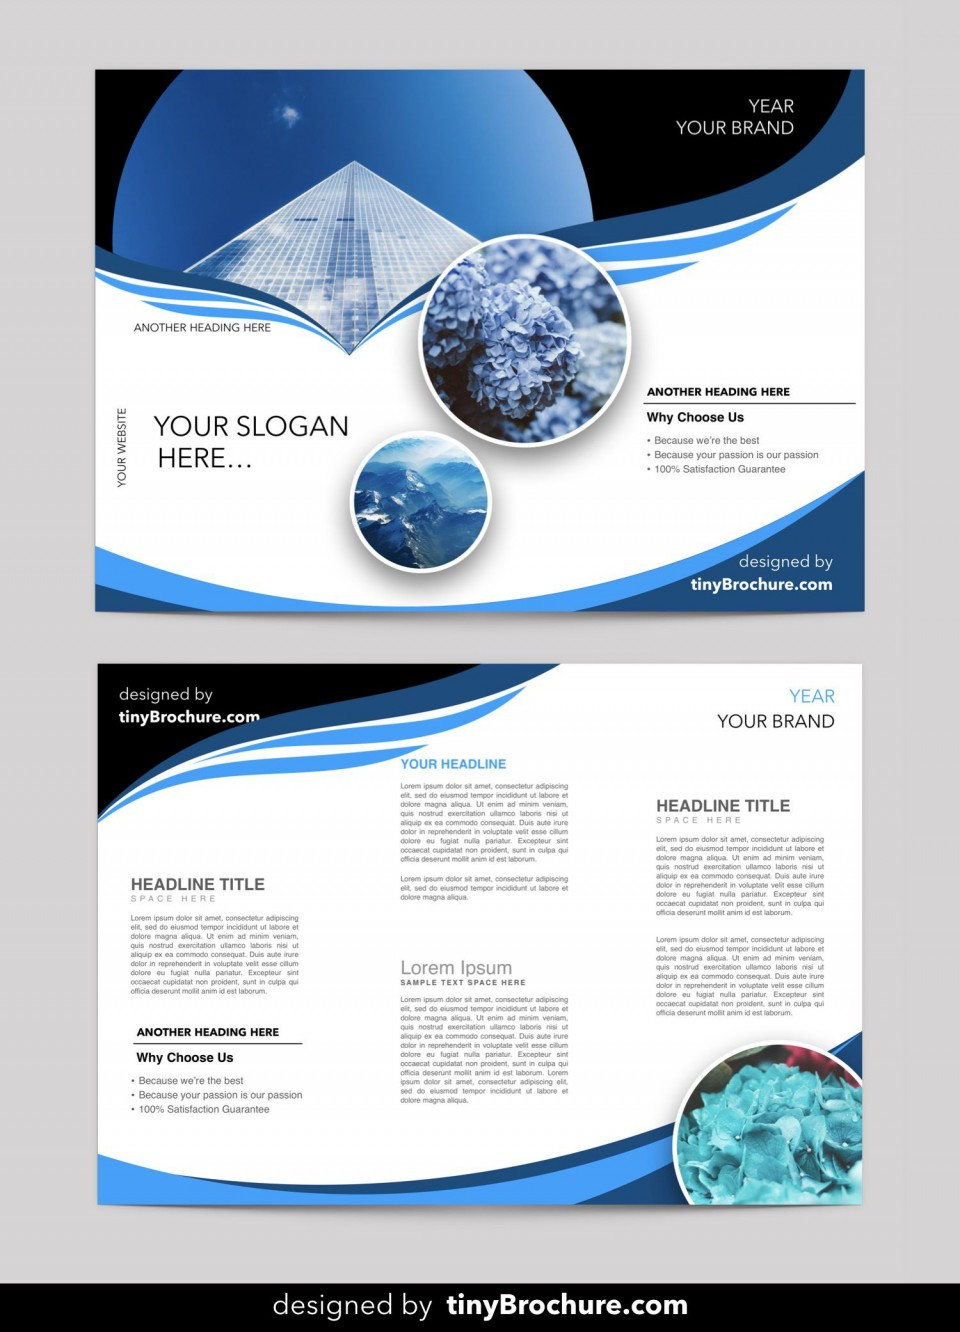 004 Rare Free Download Flyer Template High Definition  Photoshop For Microsoft Word Downloadable Publisher960